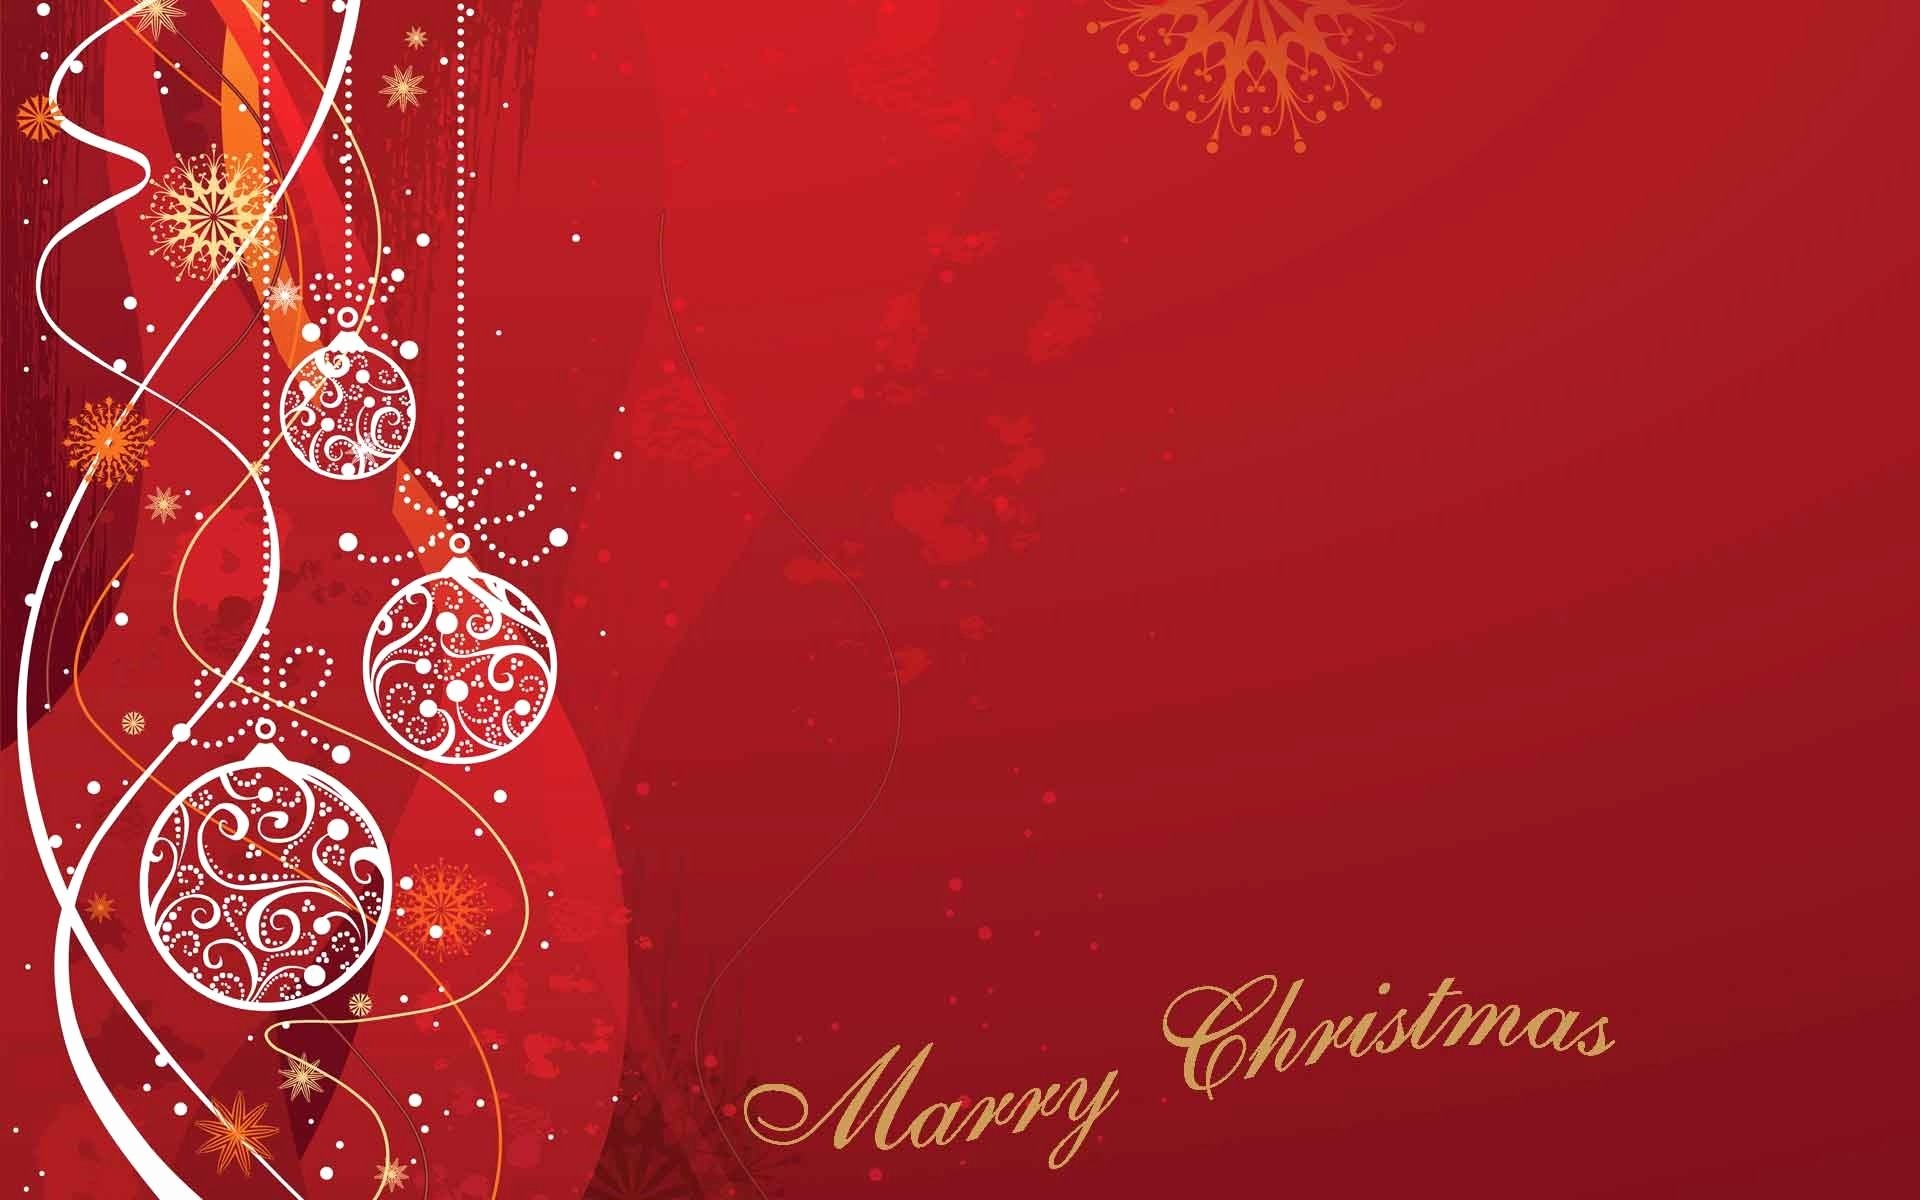 Free Christmas Template for Word Beautiful Word Christmas Card Template Portablegasgrillweber